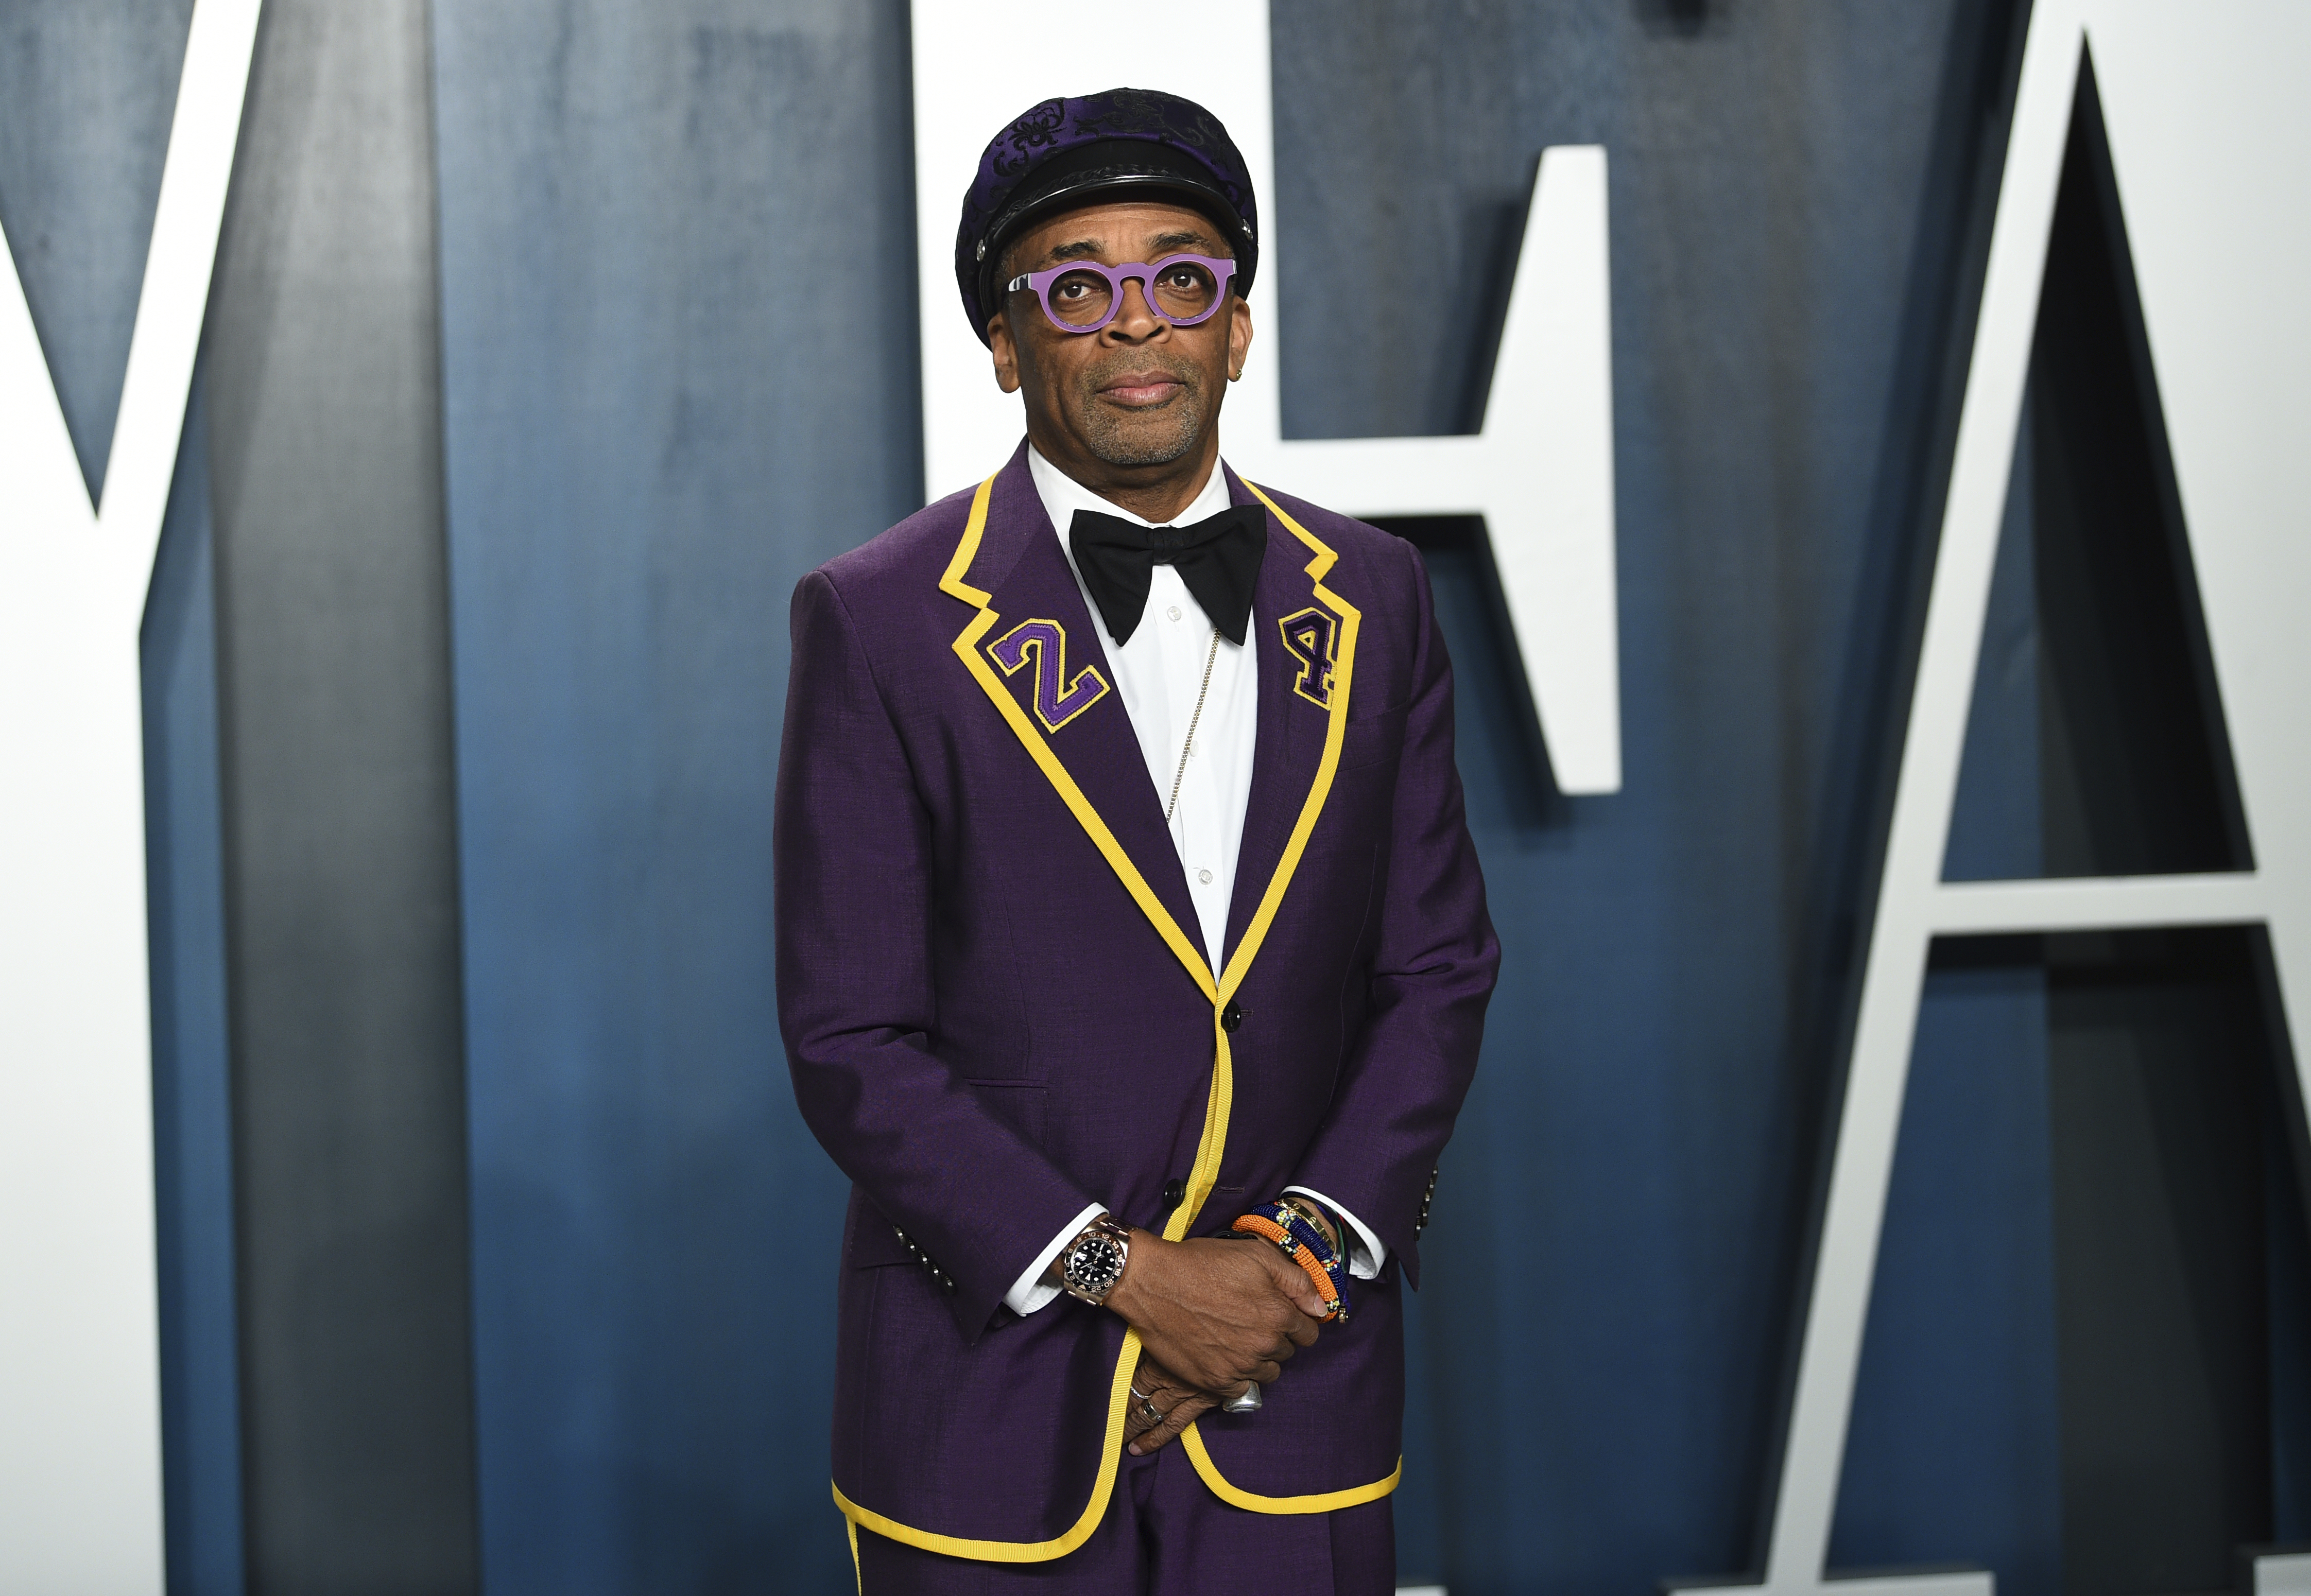 Spike Lee arrives at the Vanity Fair Oscar Party on Sunday, Feb. 9, 2020, in Beverly Hills, Calif. (Photo by Evan Agostini/Invision/AP)